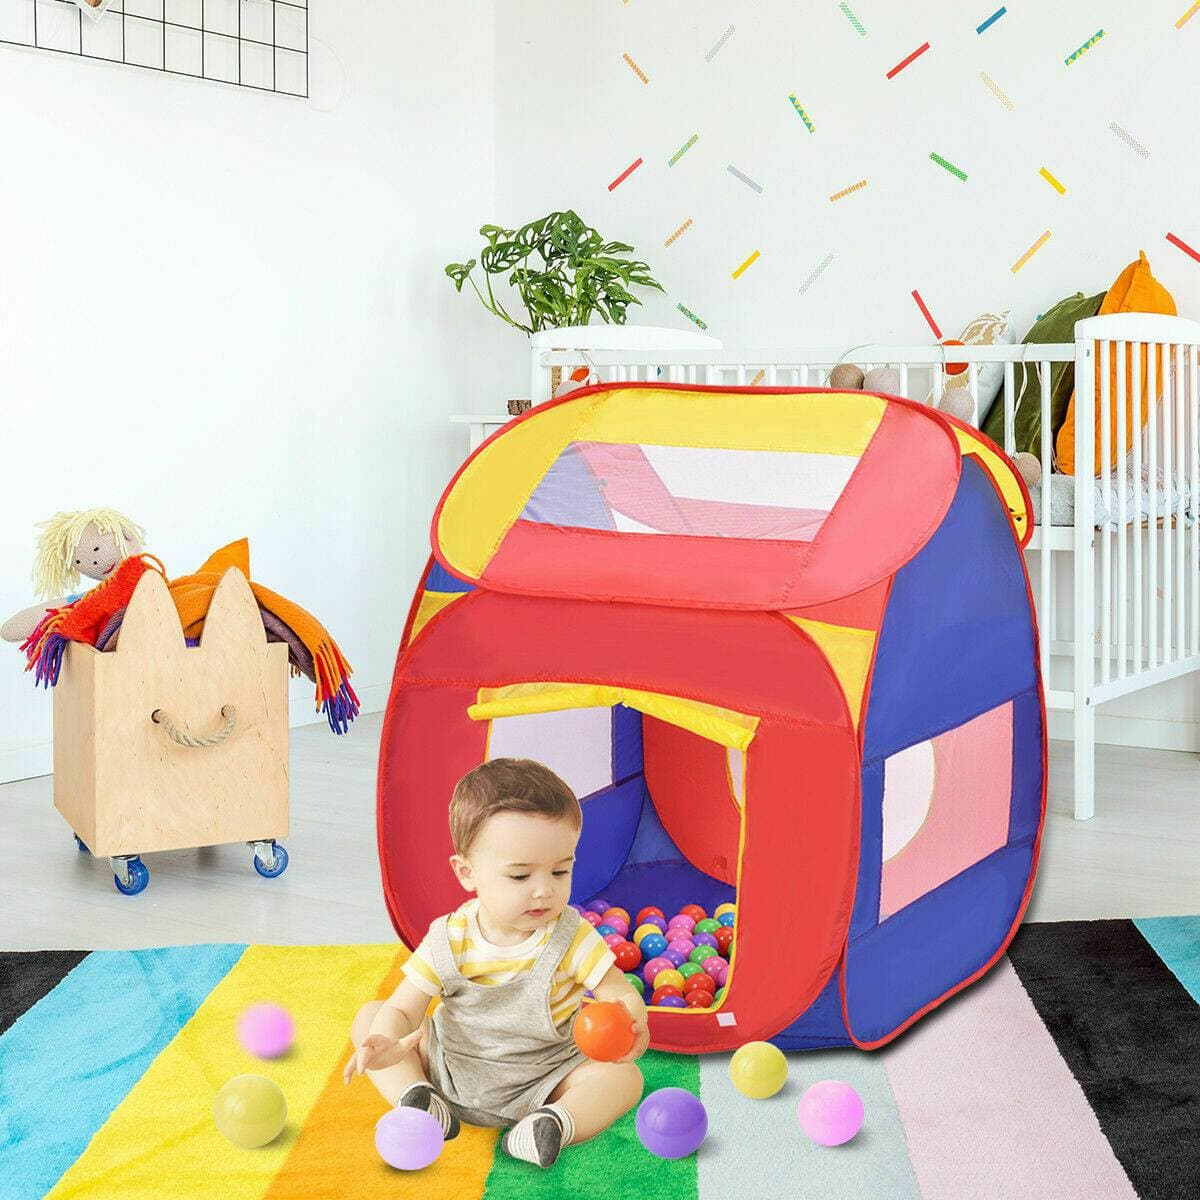 Costway Portable Kid Play House Toy Tent with 100 Balls for $34.95 + Free Shipping